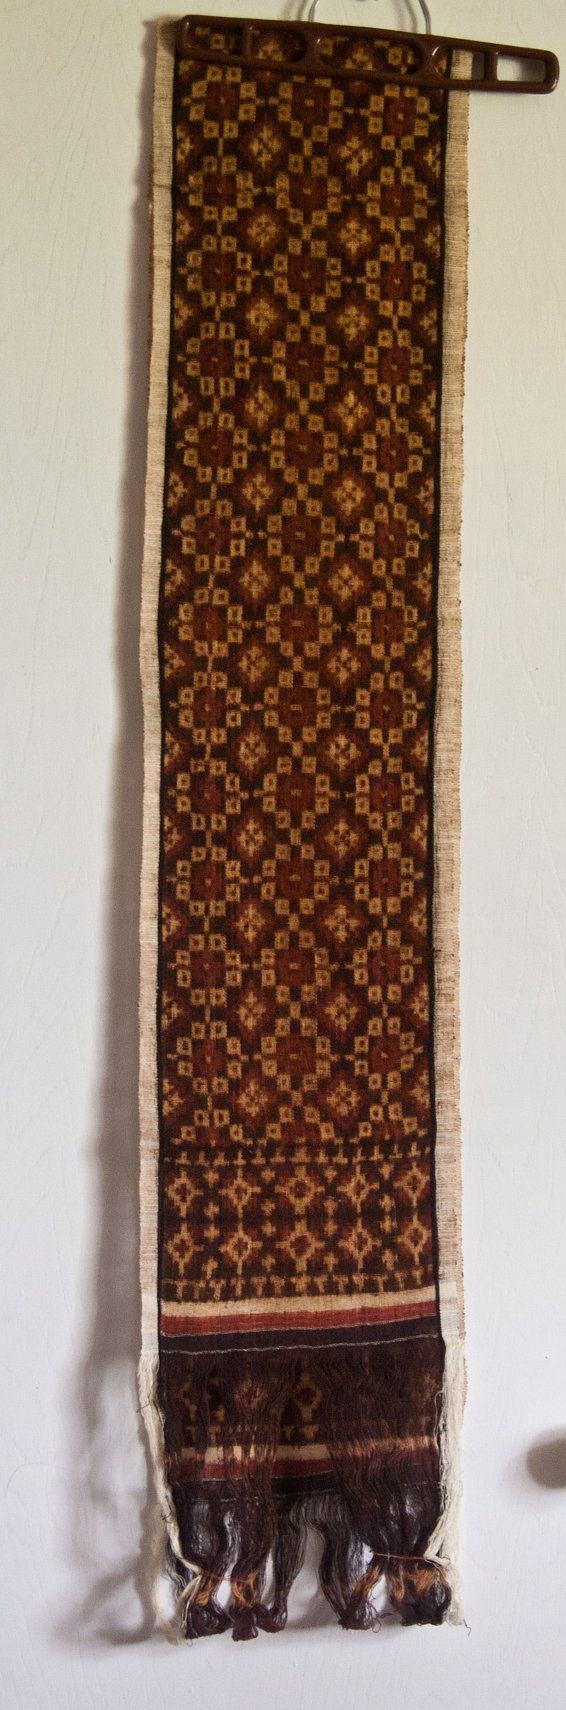 Gringsing, double ikat from Tenganan, Bali This piece is a Gringsing -- a ceremonial cloth handwoven using the double ikat method in Tenganan, Bali. This was purchased from the weaver and dates to the early 1990s.